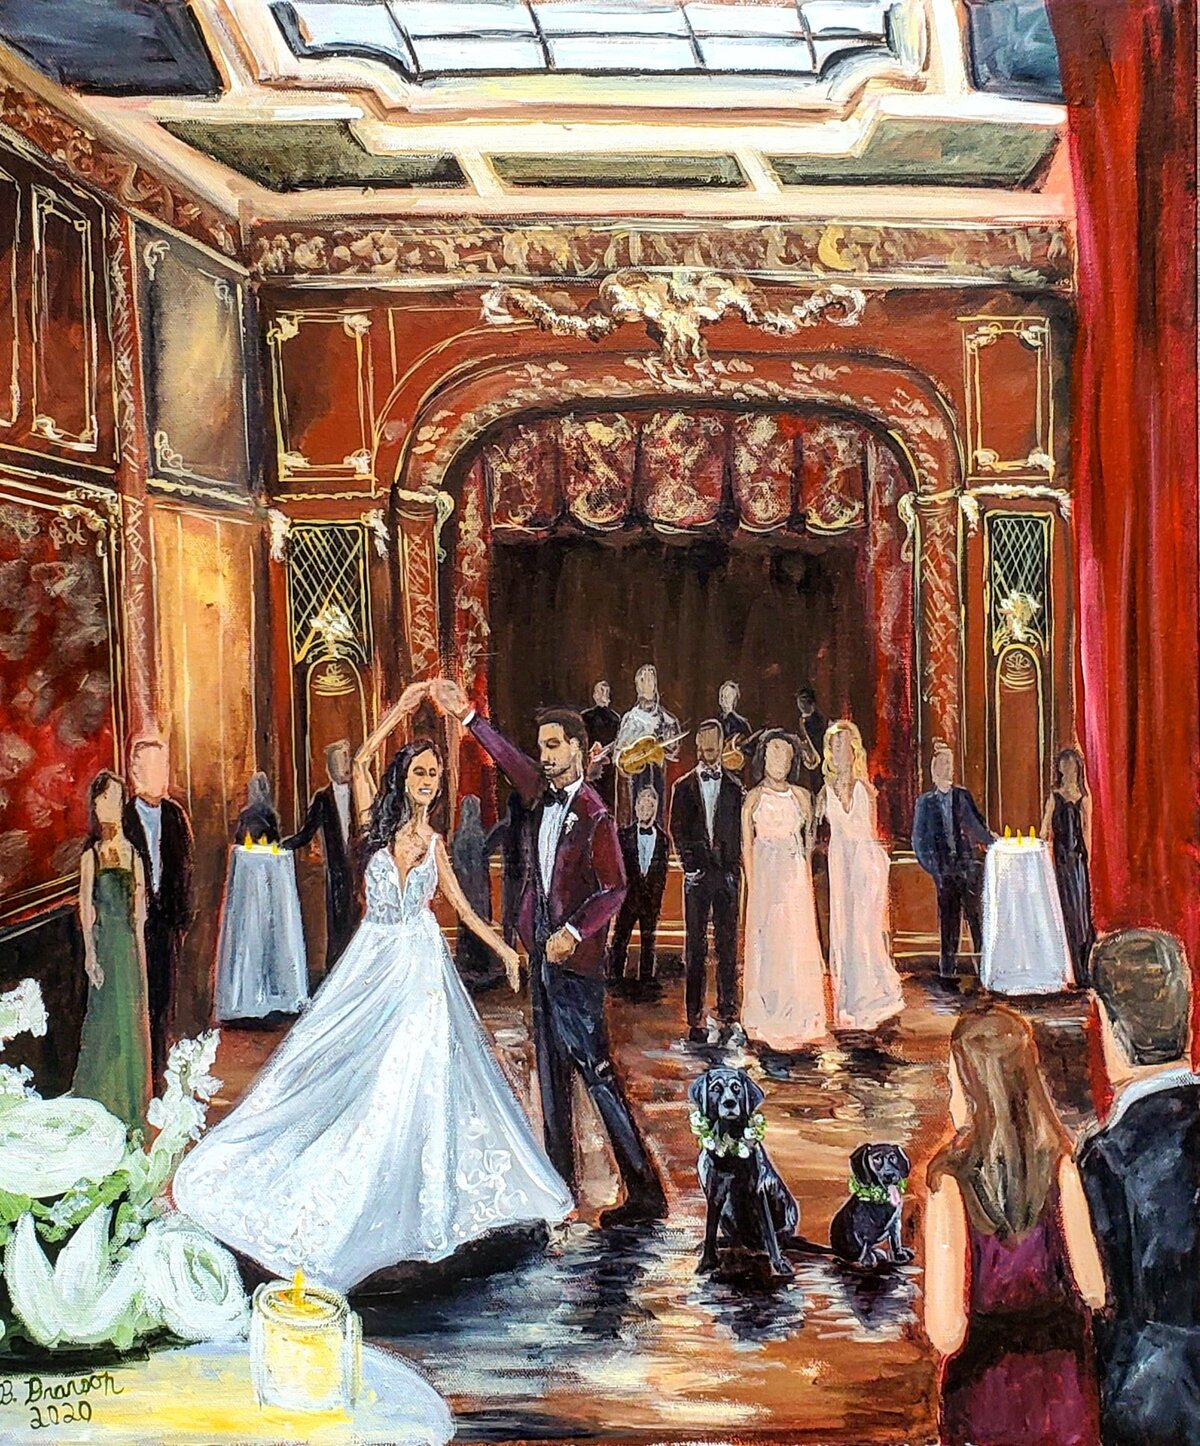 Live painting of a bride and groom sharing their first dance in the ballroom of the Engineers Club in Baltimore Maryland